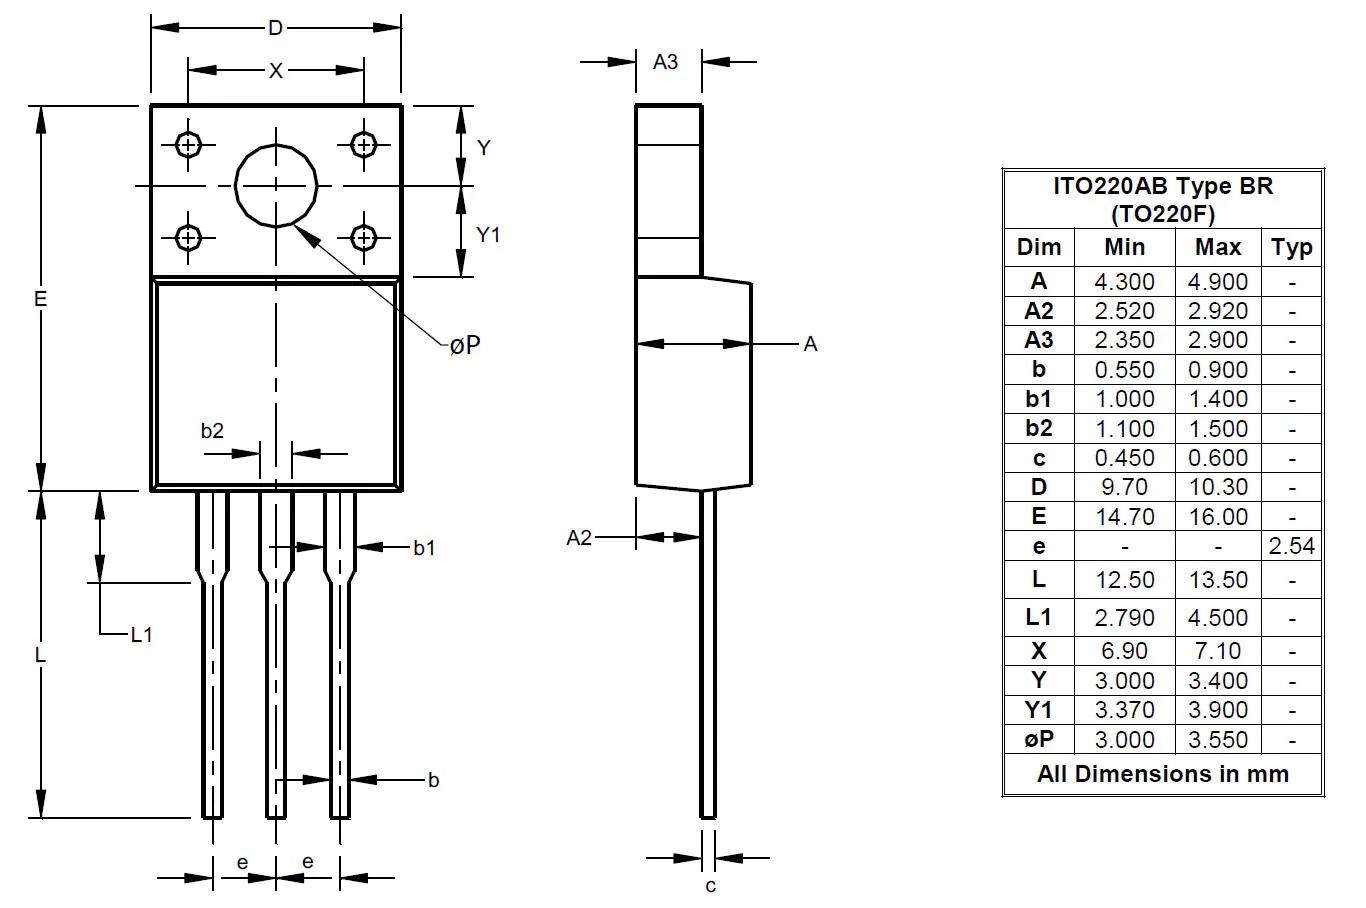 medium resolution of orcad capture auto electrical wiring diagram package outlines and suggest pad layouts